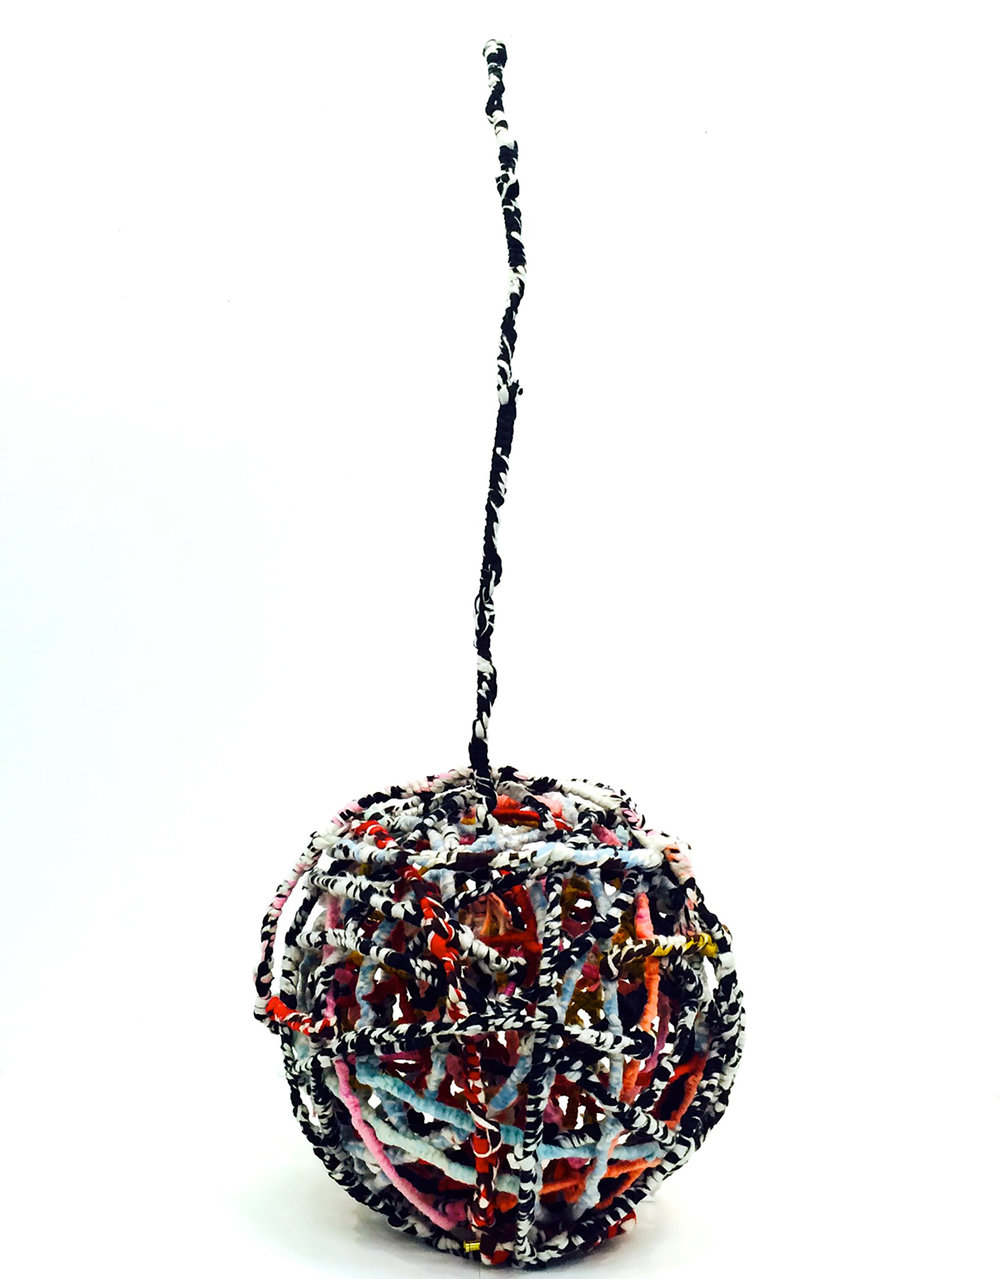 Kathleen Schneider,  Globe , Wool, felt and wire, 65 x 25 x 25 inches